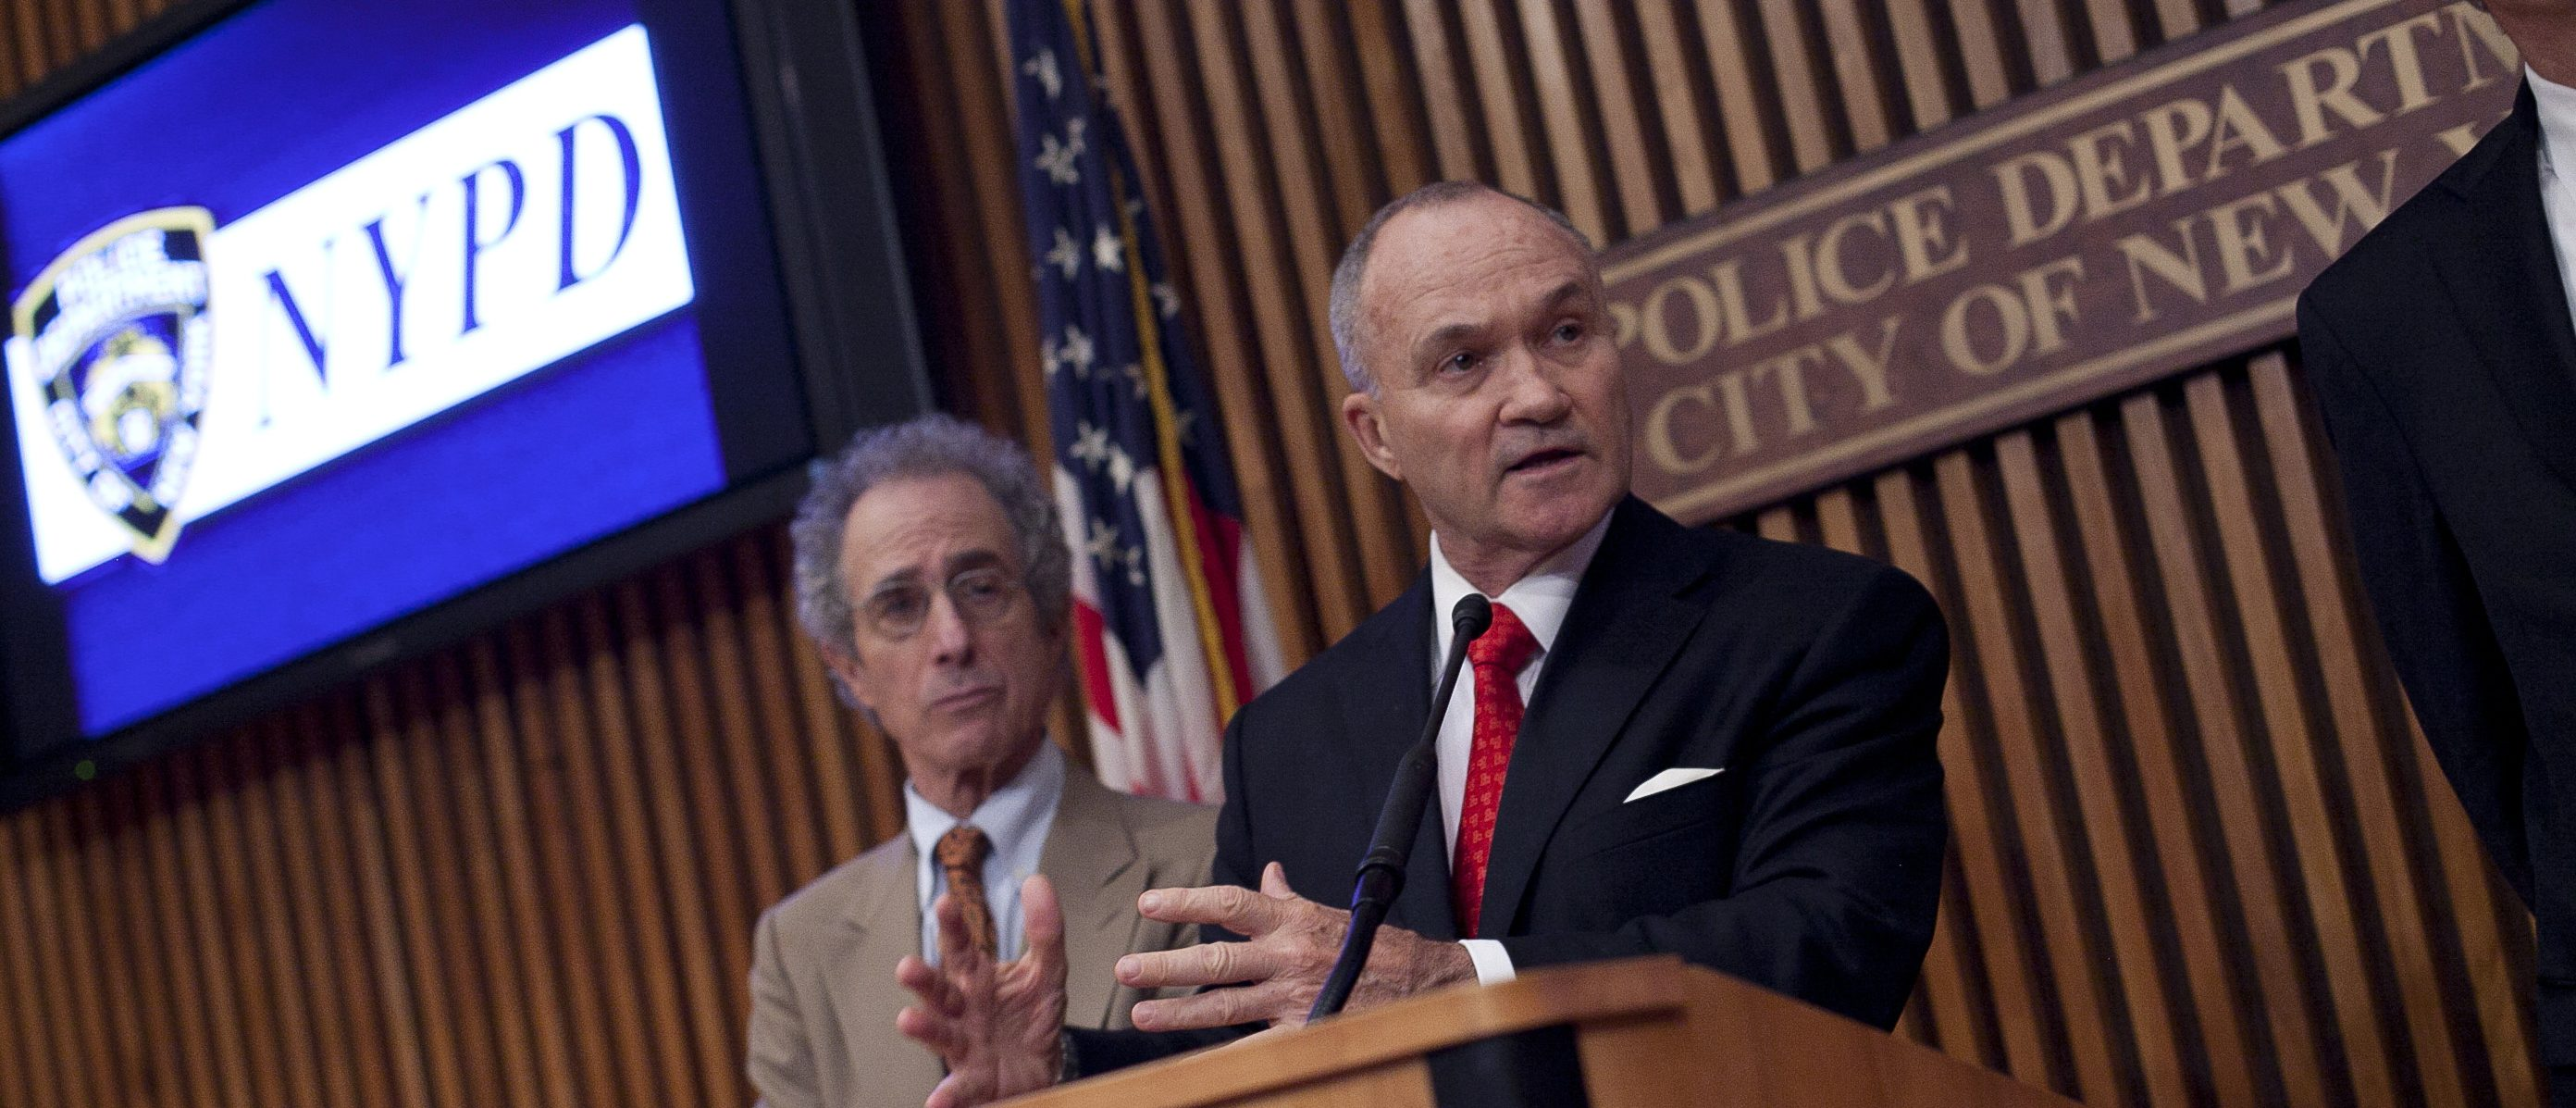 NEW YORK, NY - MAY 24: New York City Police Commissioner Ray Kelly holds a news conference at Police Headquarters May 24, 2012 in in New York City. Kelly announced the arrest of Pedro Hernandez, who police say confessed to the 1979 killing of six-year-old Etan Patz. (Photo by Allison Joyce/Getty Images)